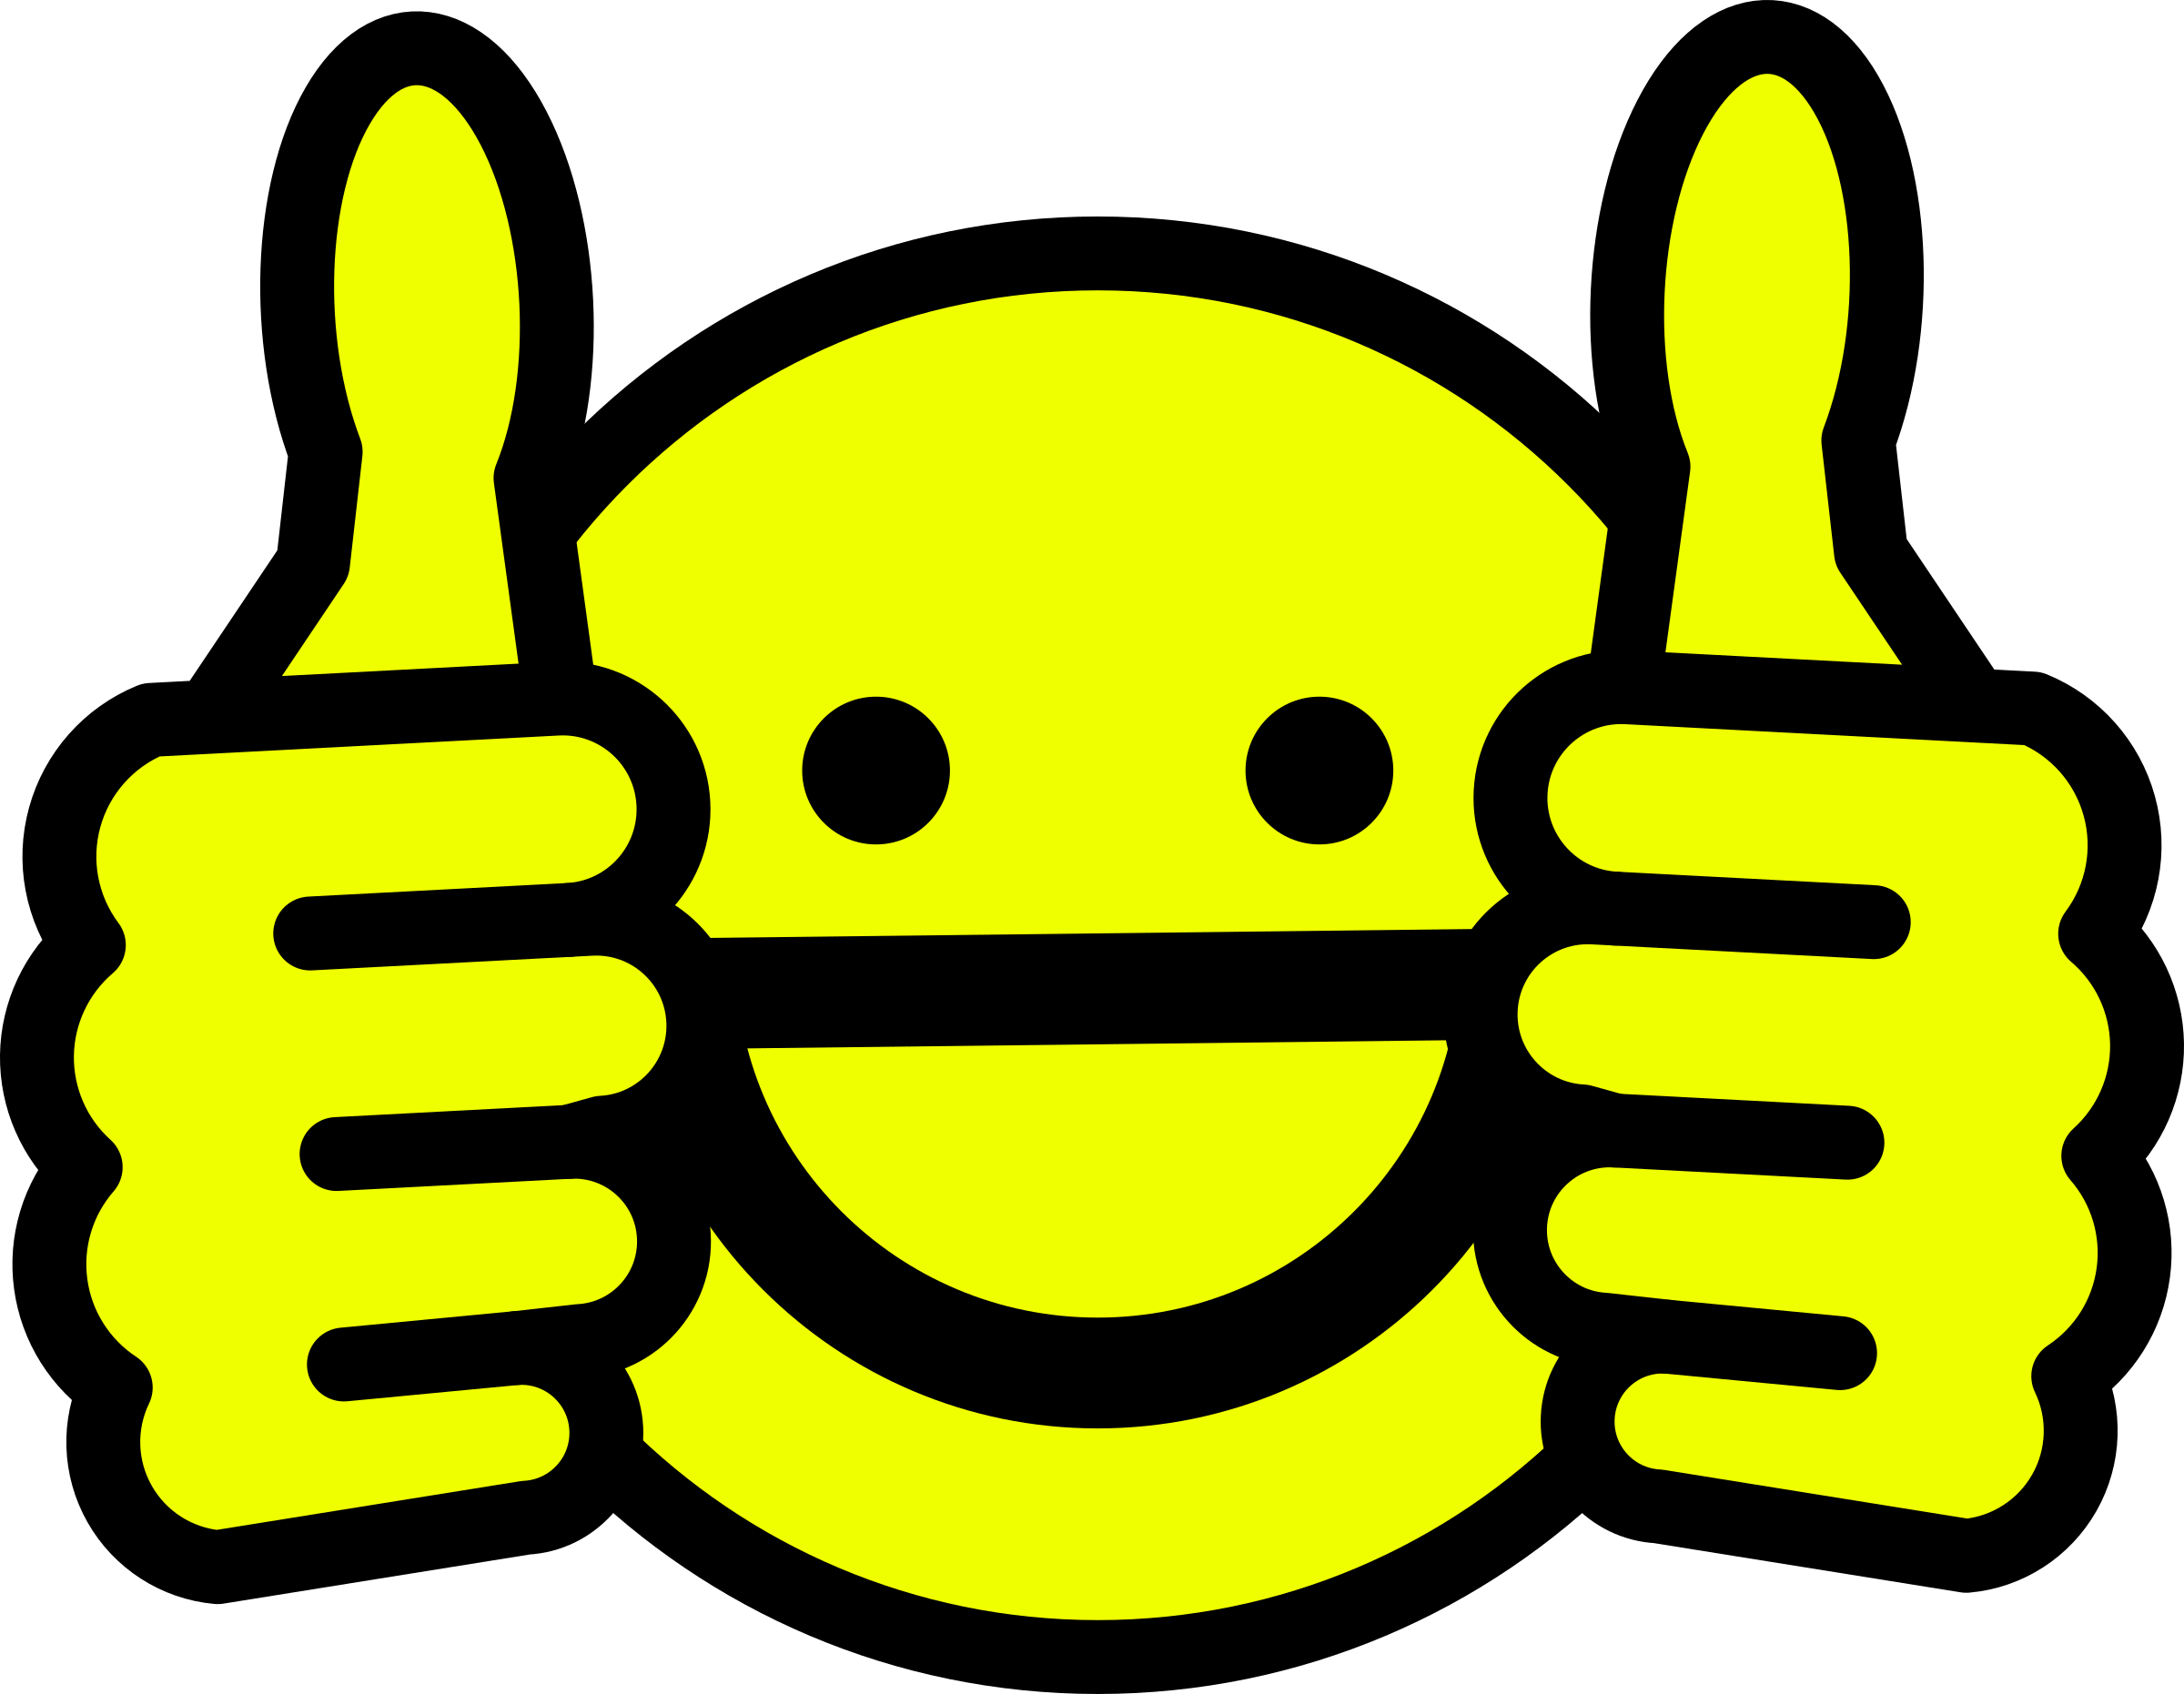 Awesome Smiley Face Png Image